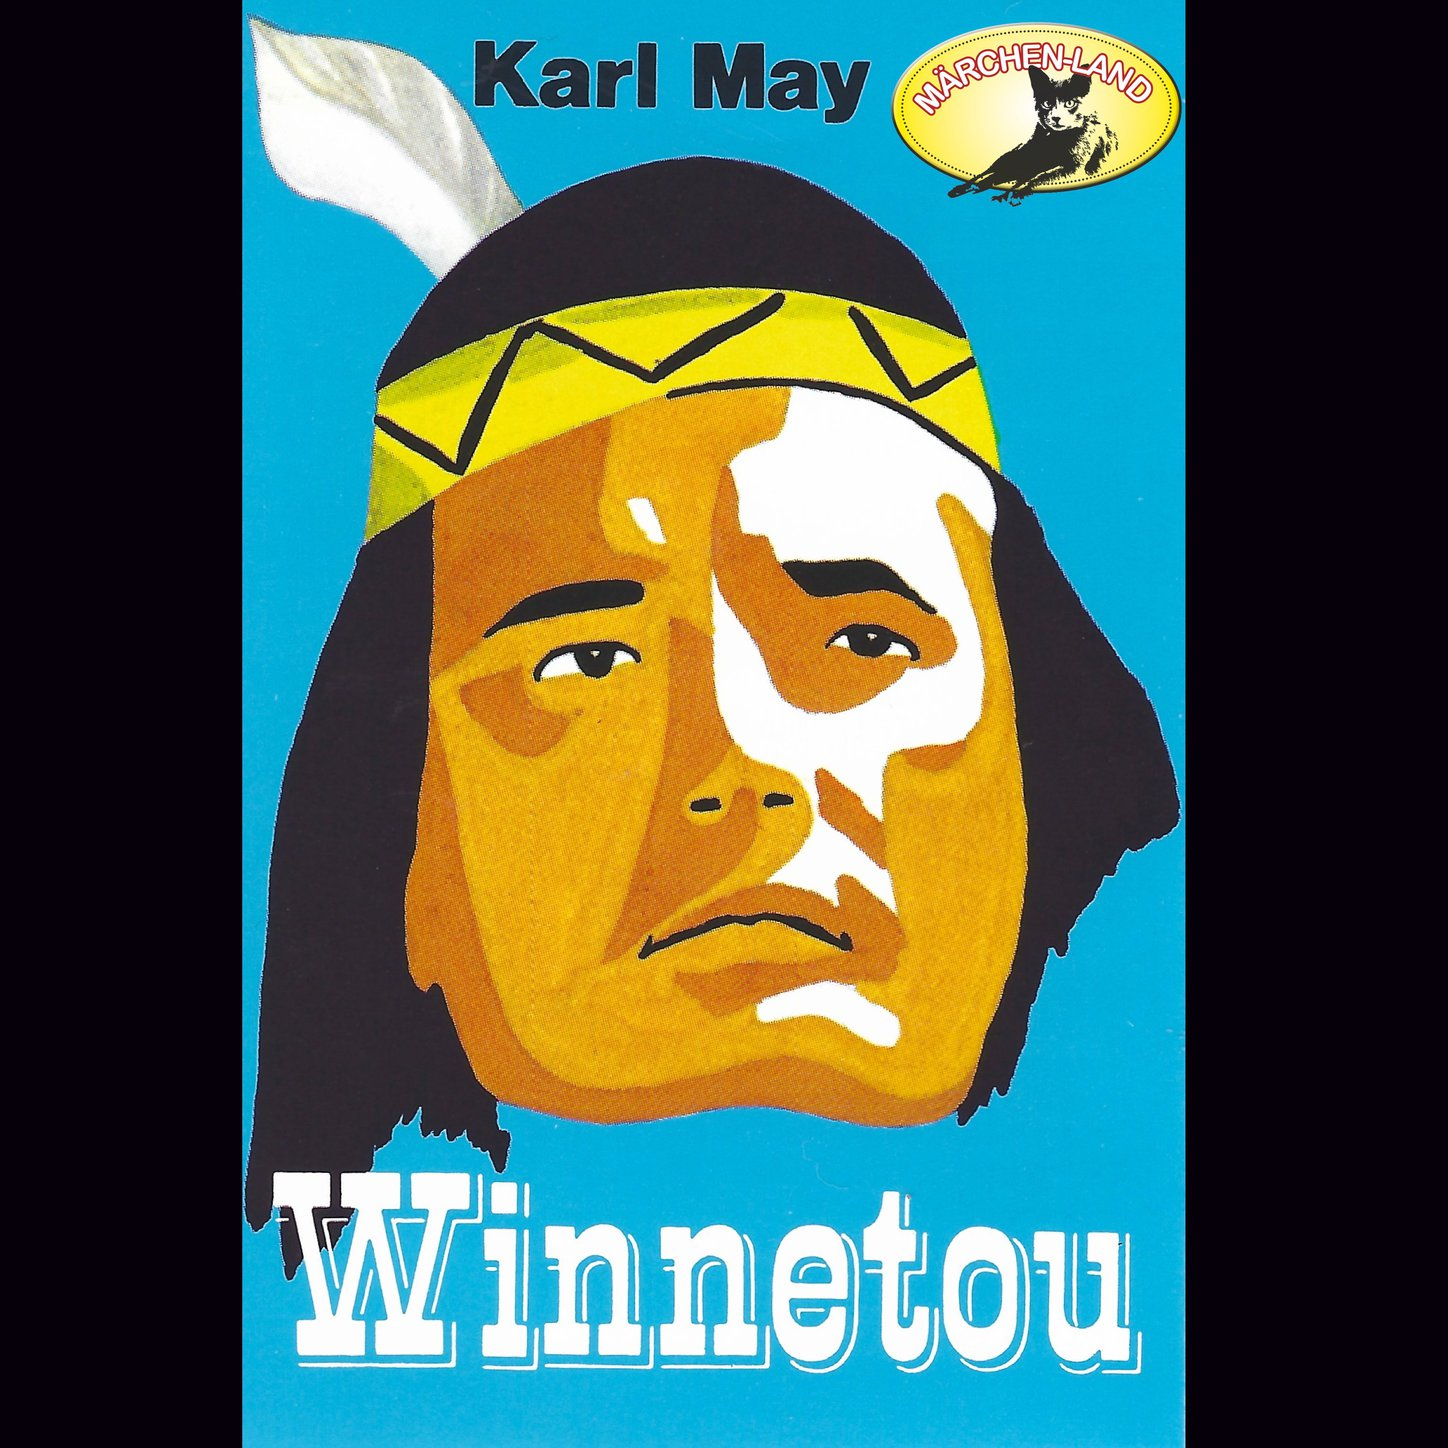 Karl May Karl May, Folge 2: Winnetou karl may deadly dust